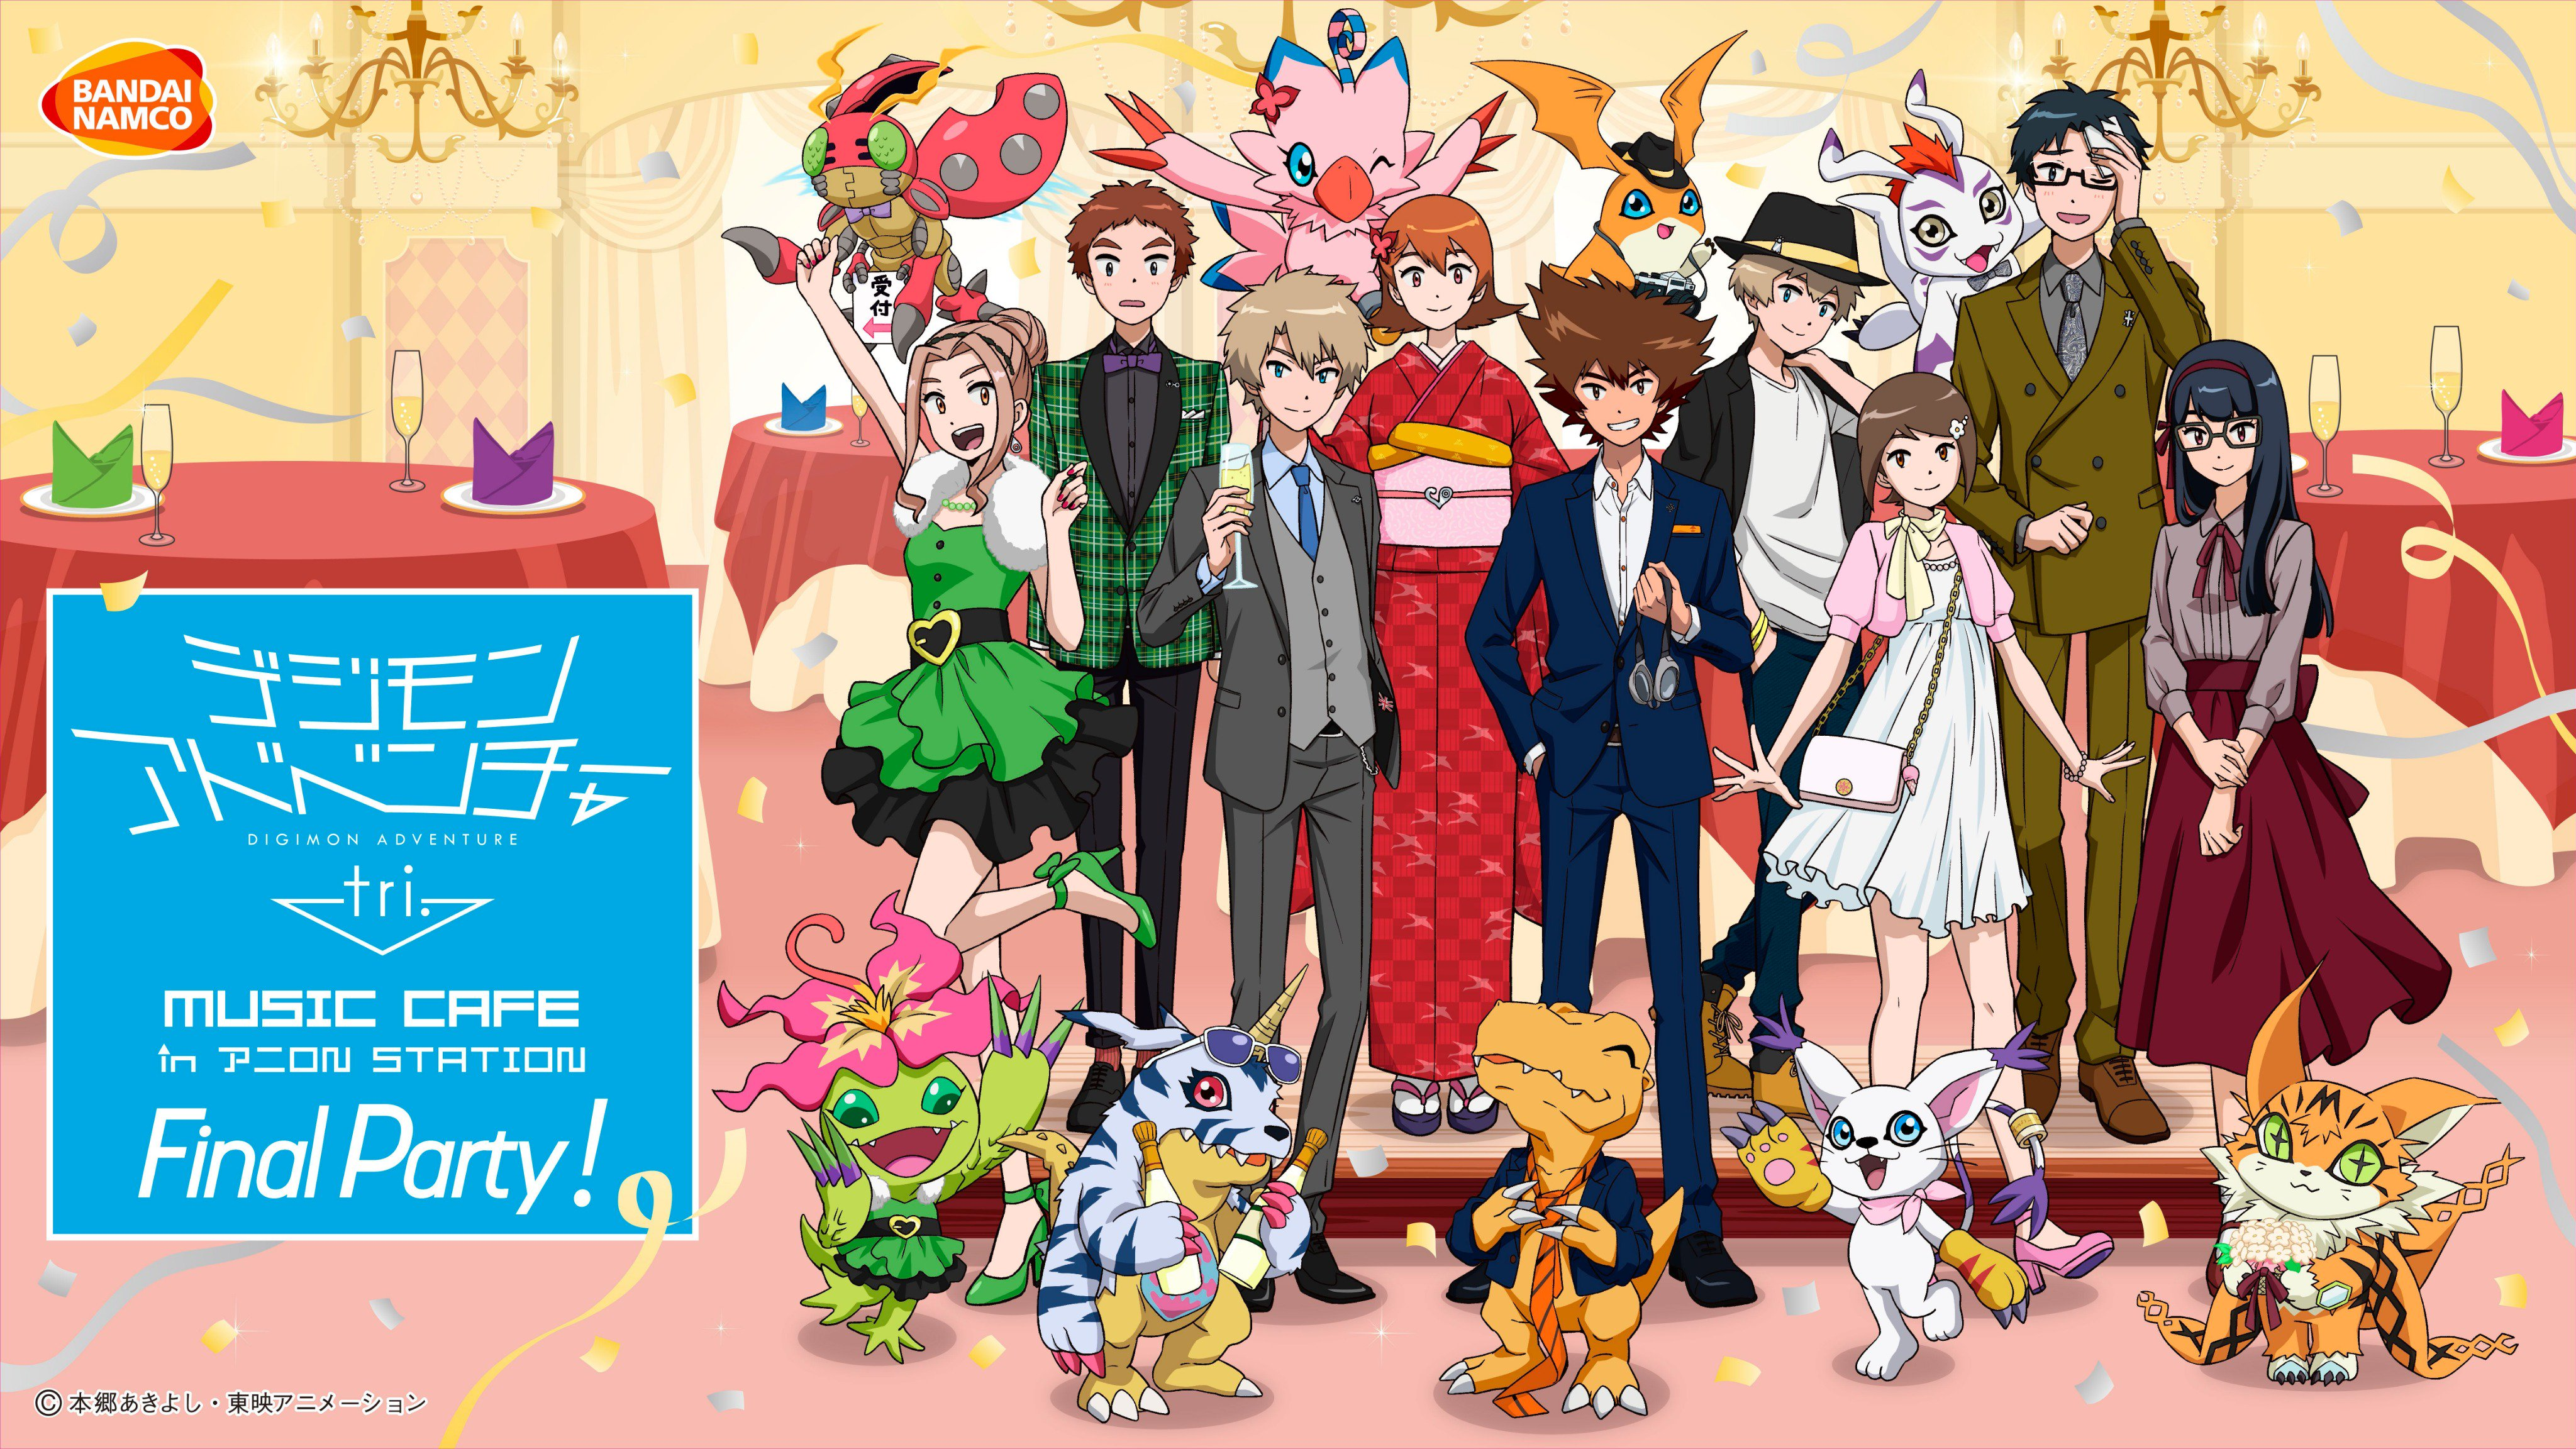 Esconderijo do Zampari: Apresentando noticias sobre digimon ou converse comigo - Página 7 Anion3key_march29_2018